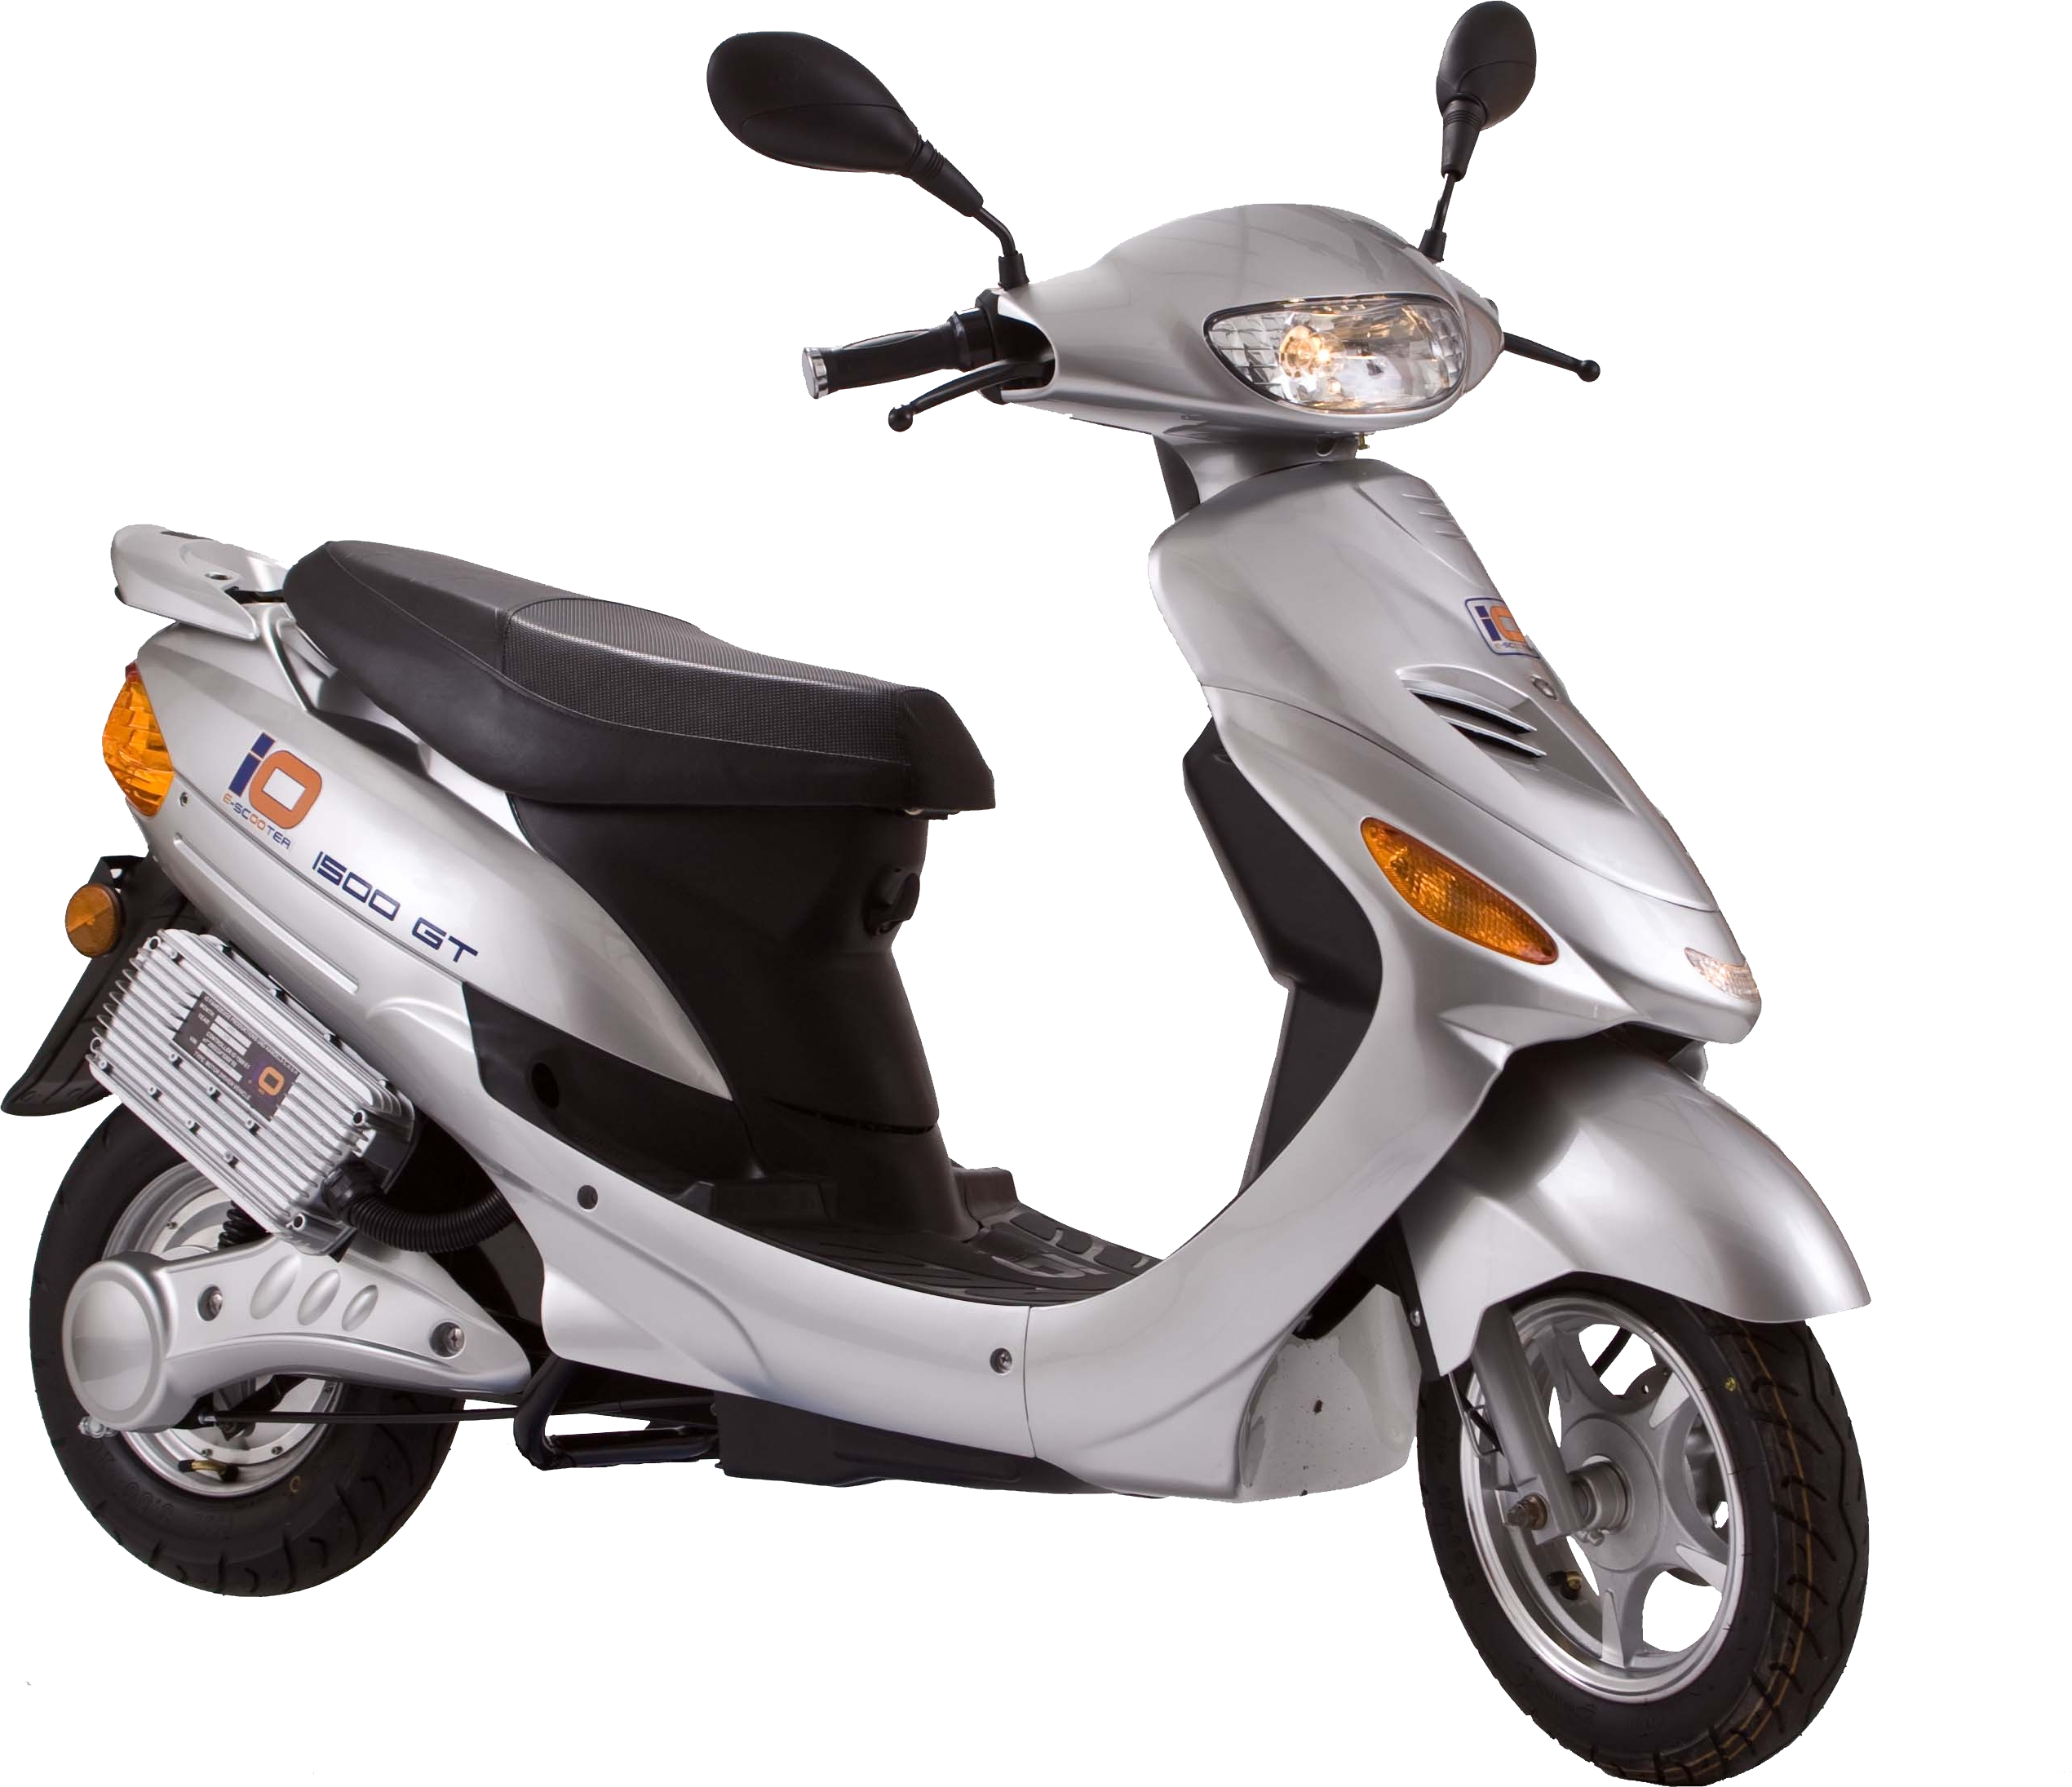 Png image purepng free. Cycle clipart bike scooter